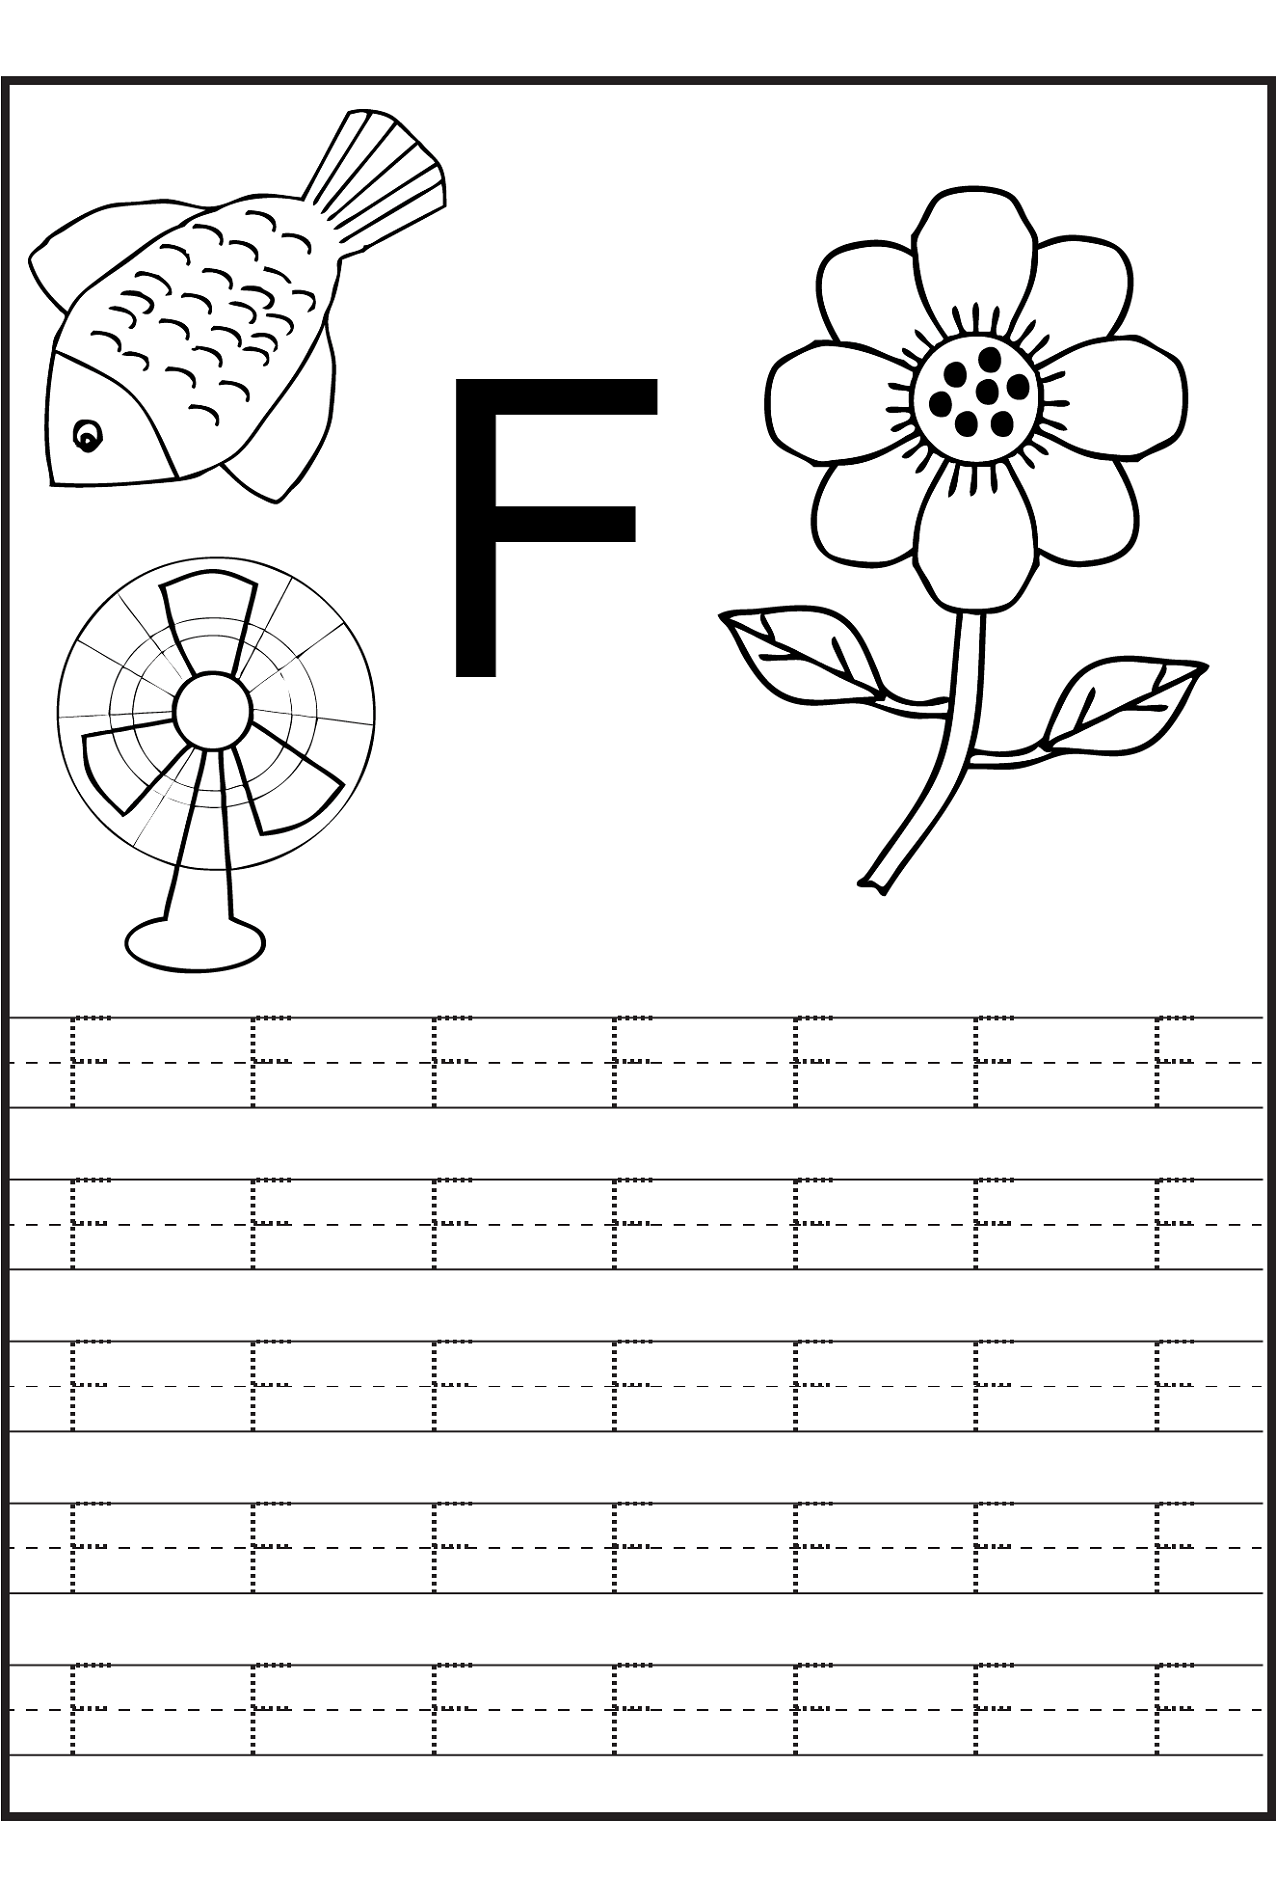 Worksheet Letter S Worksheets For Kindergarten Grass